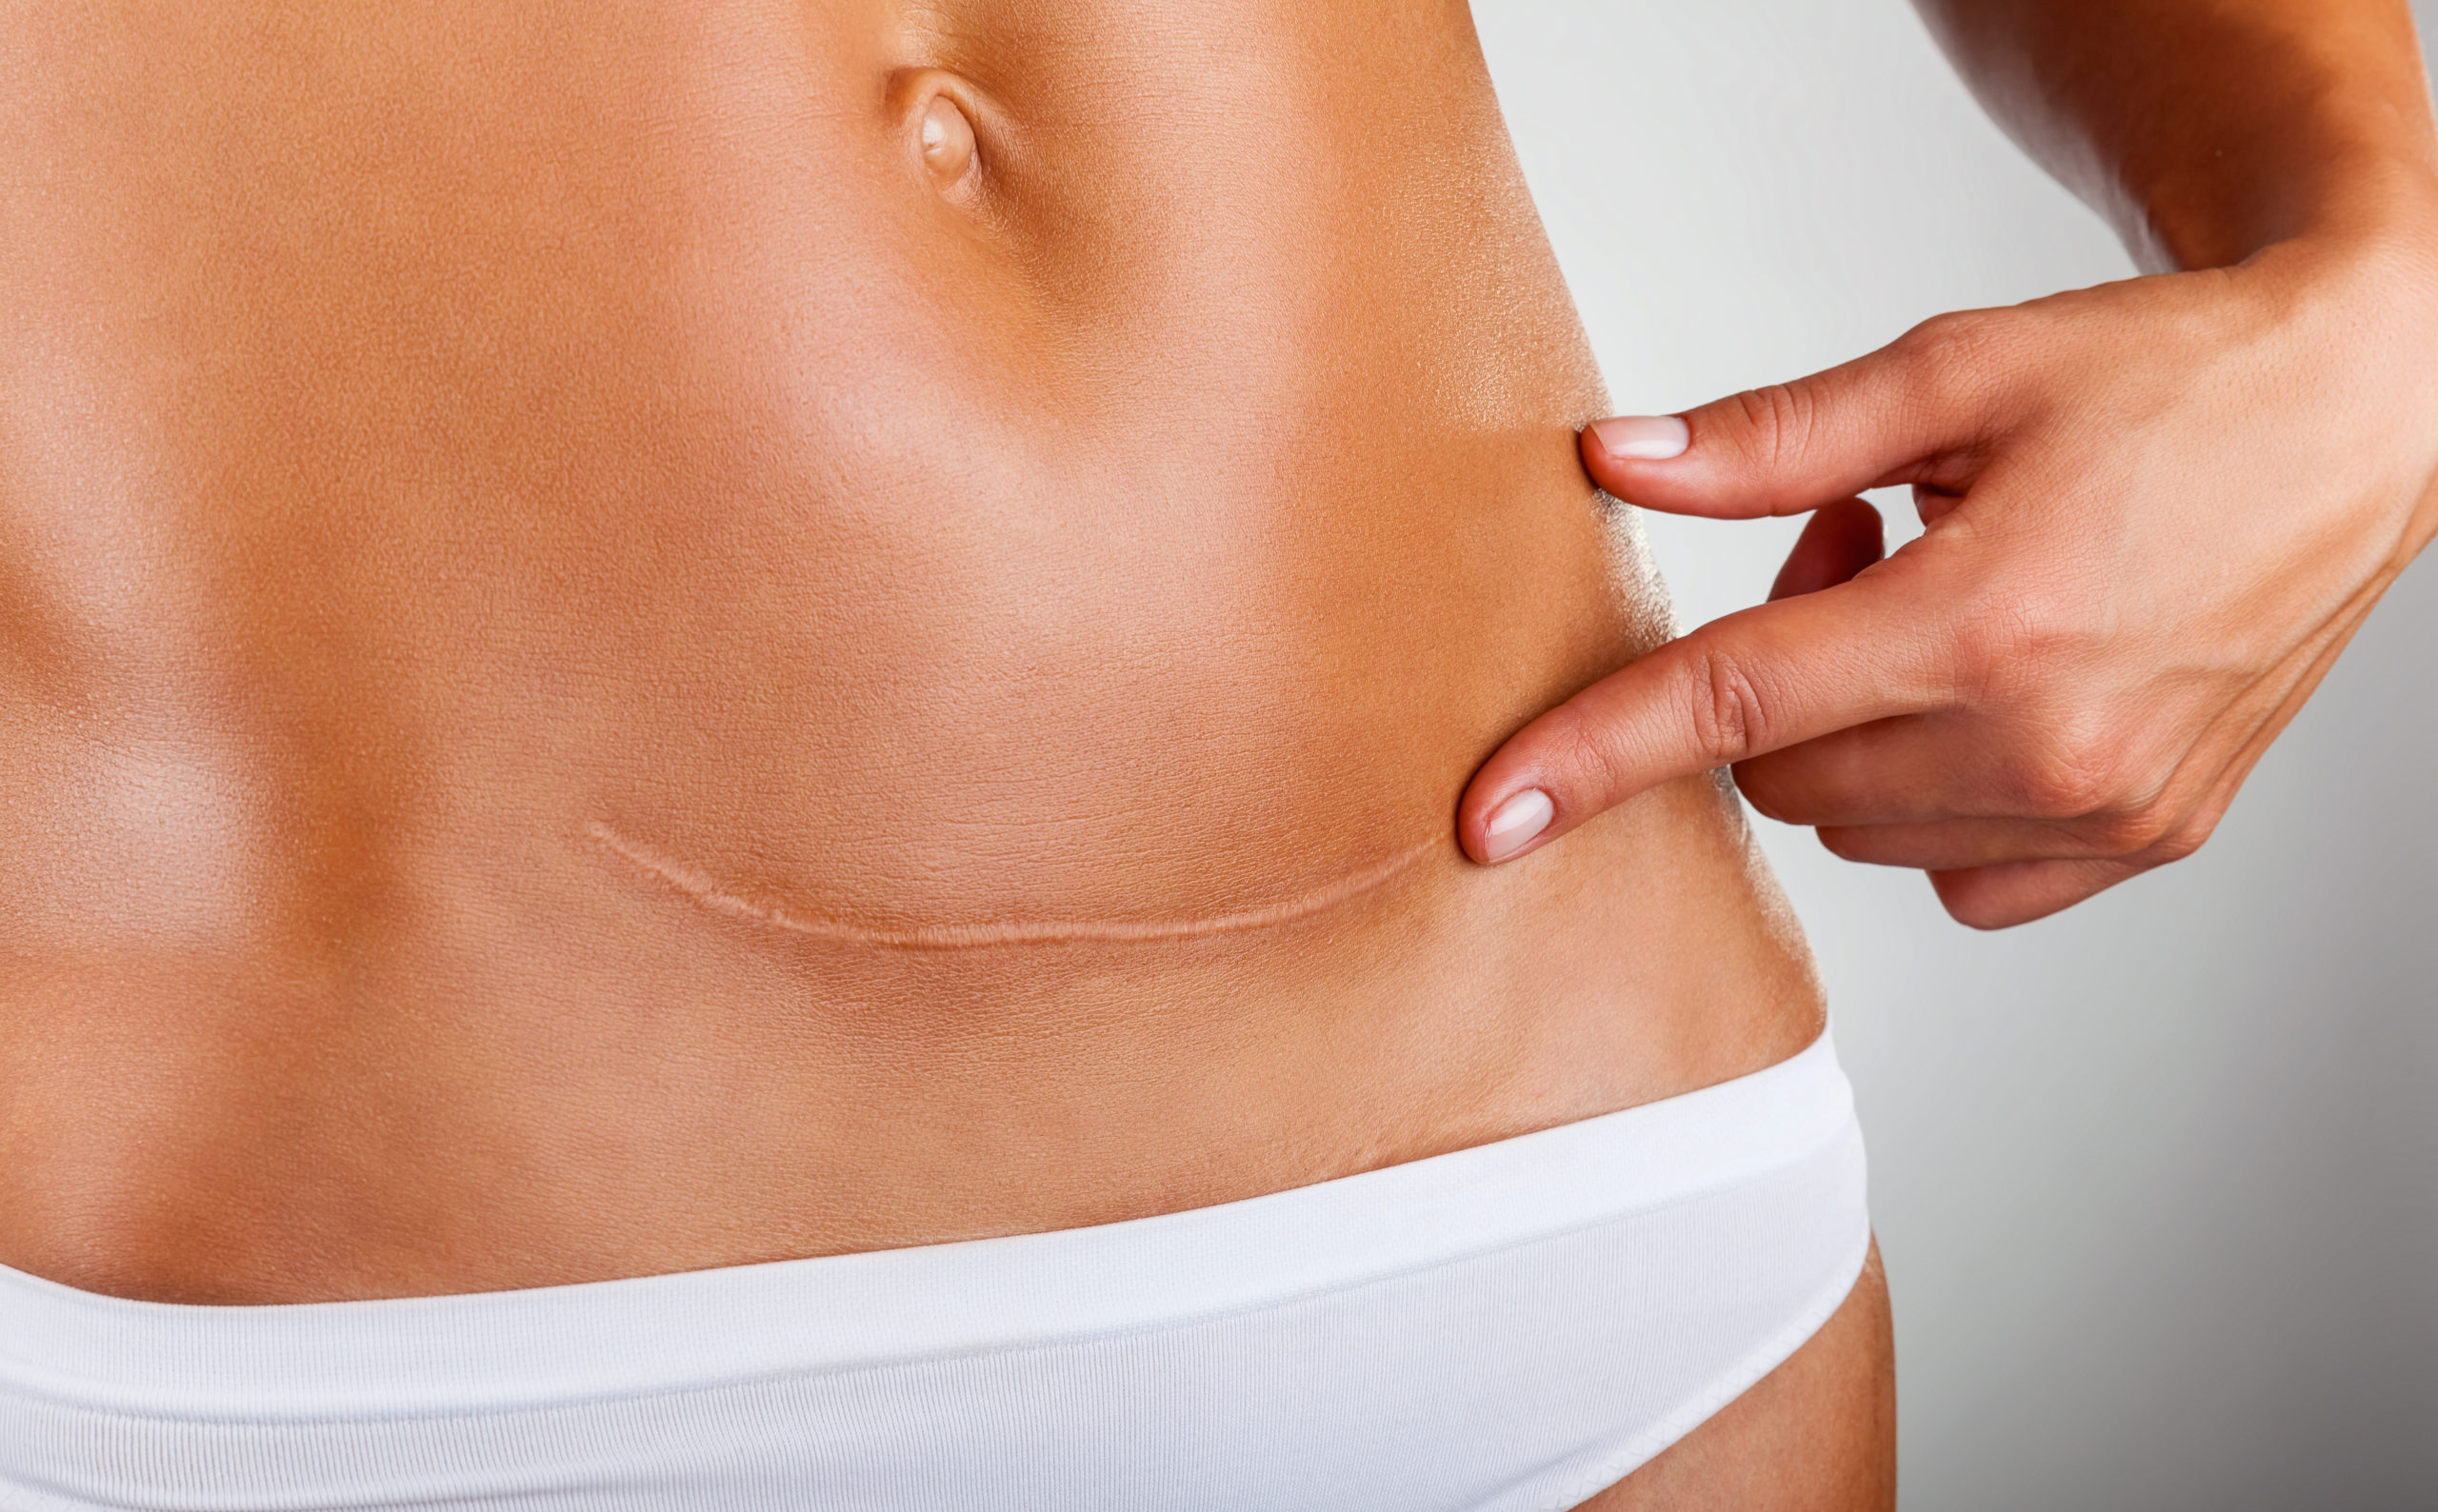 Managing Your Cesarean Scar May Be More Important Than You Think